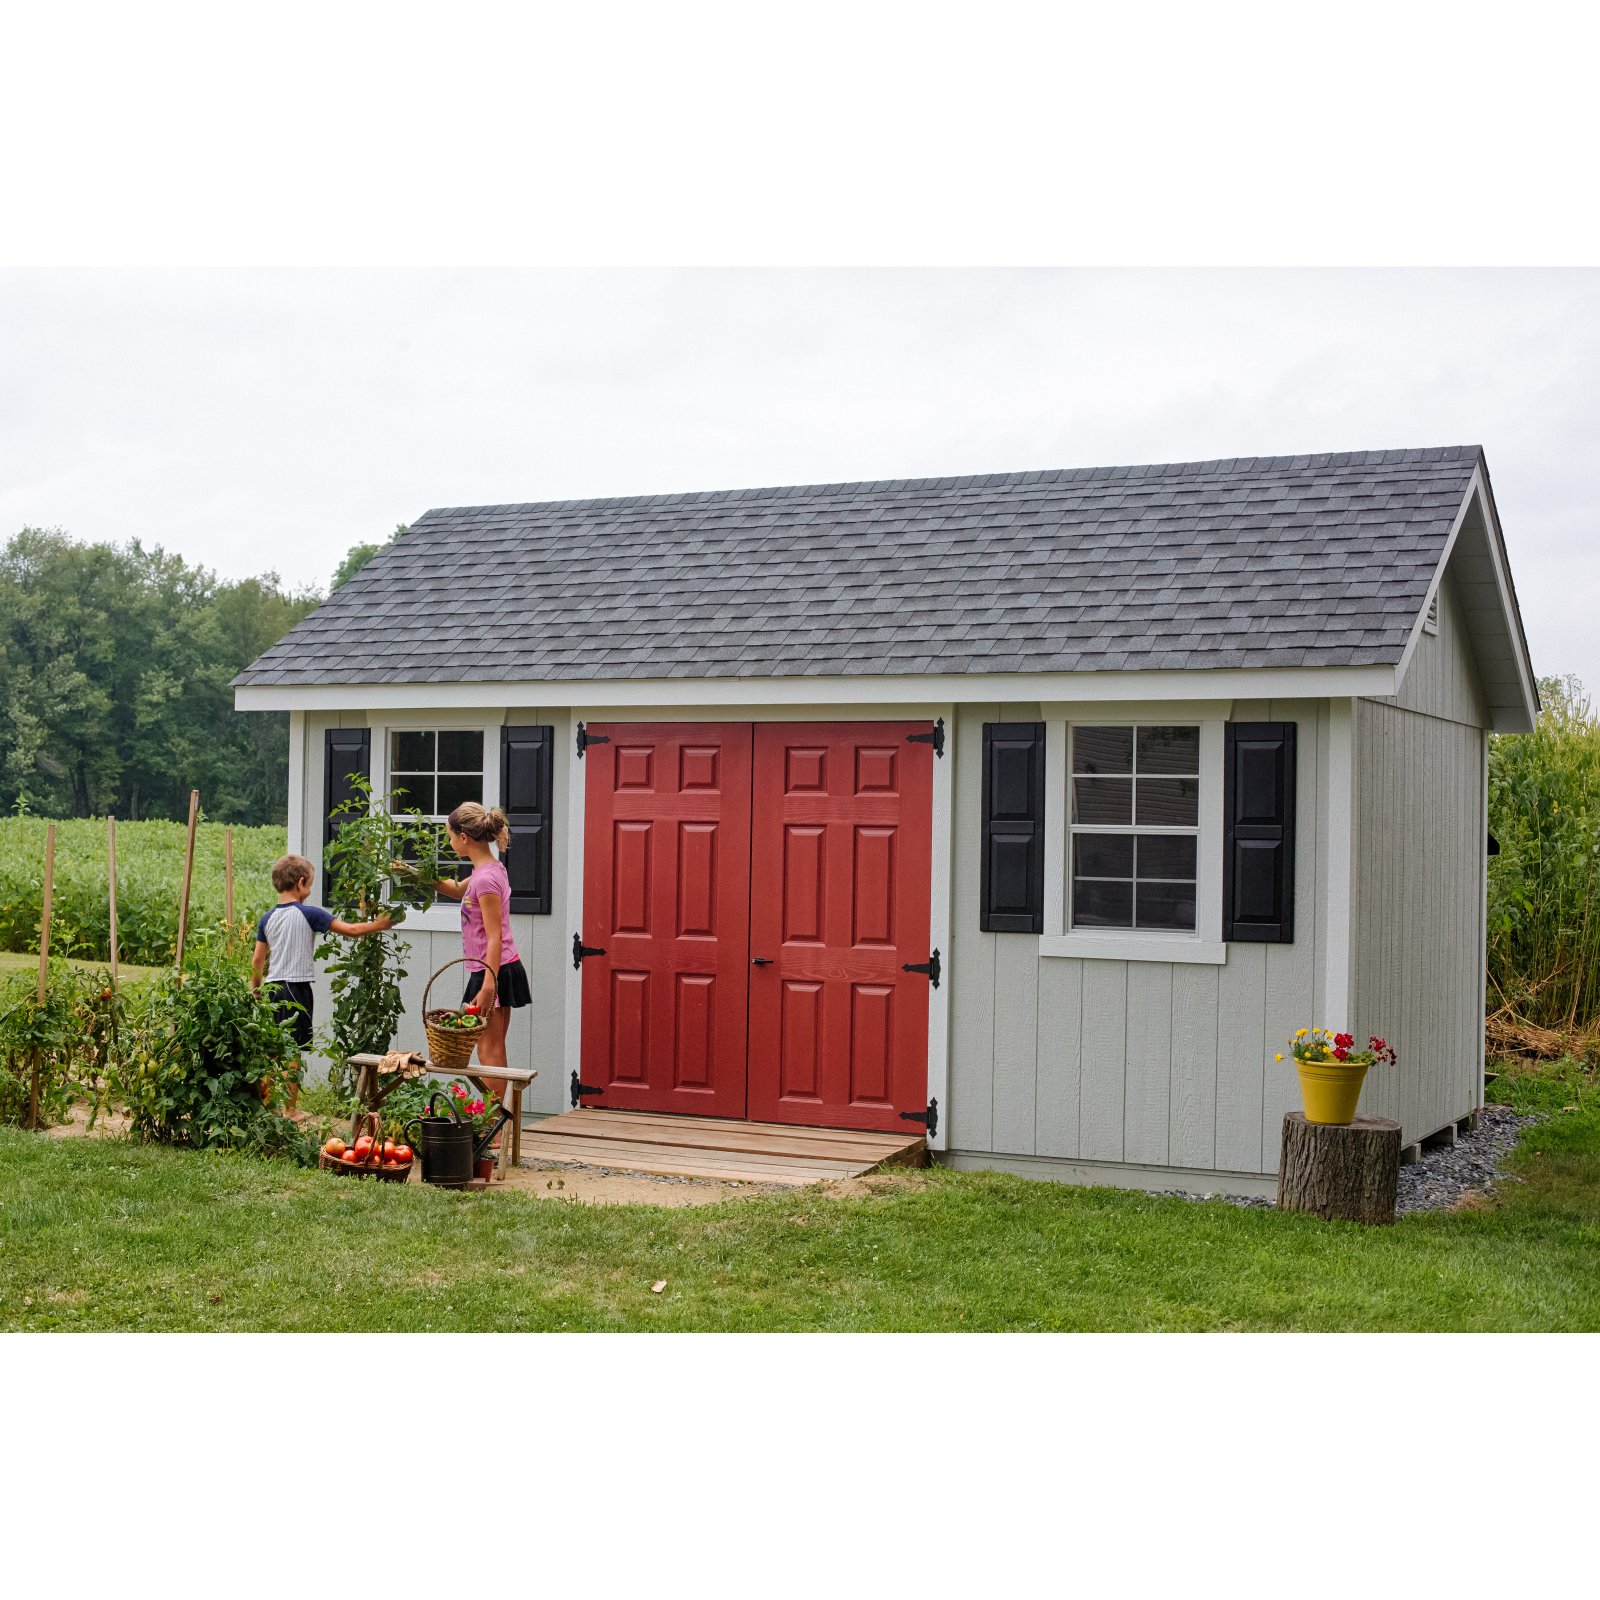 YardCraft 10 ft. x 18 ft. Fairmont Garden Shed by Supplier Generic